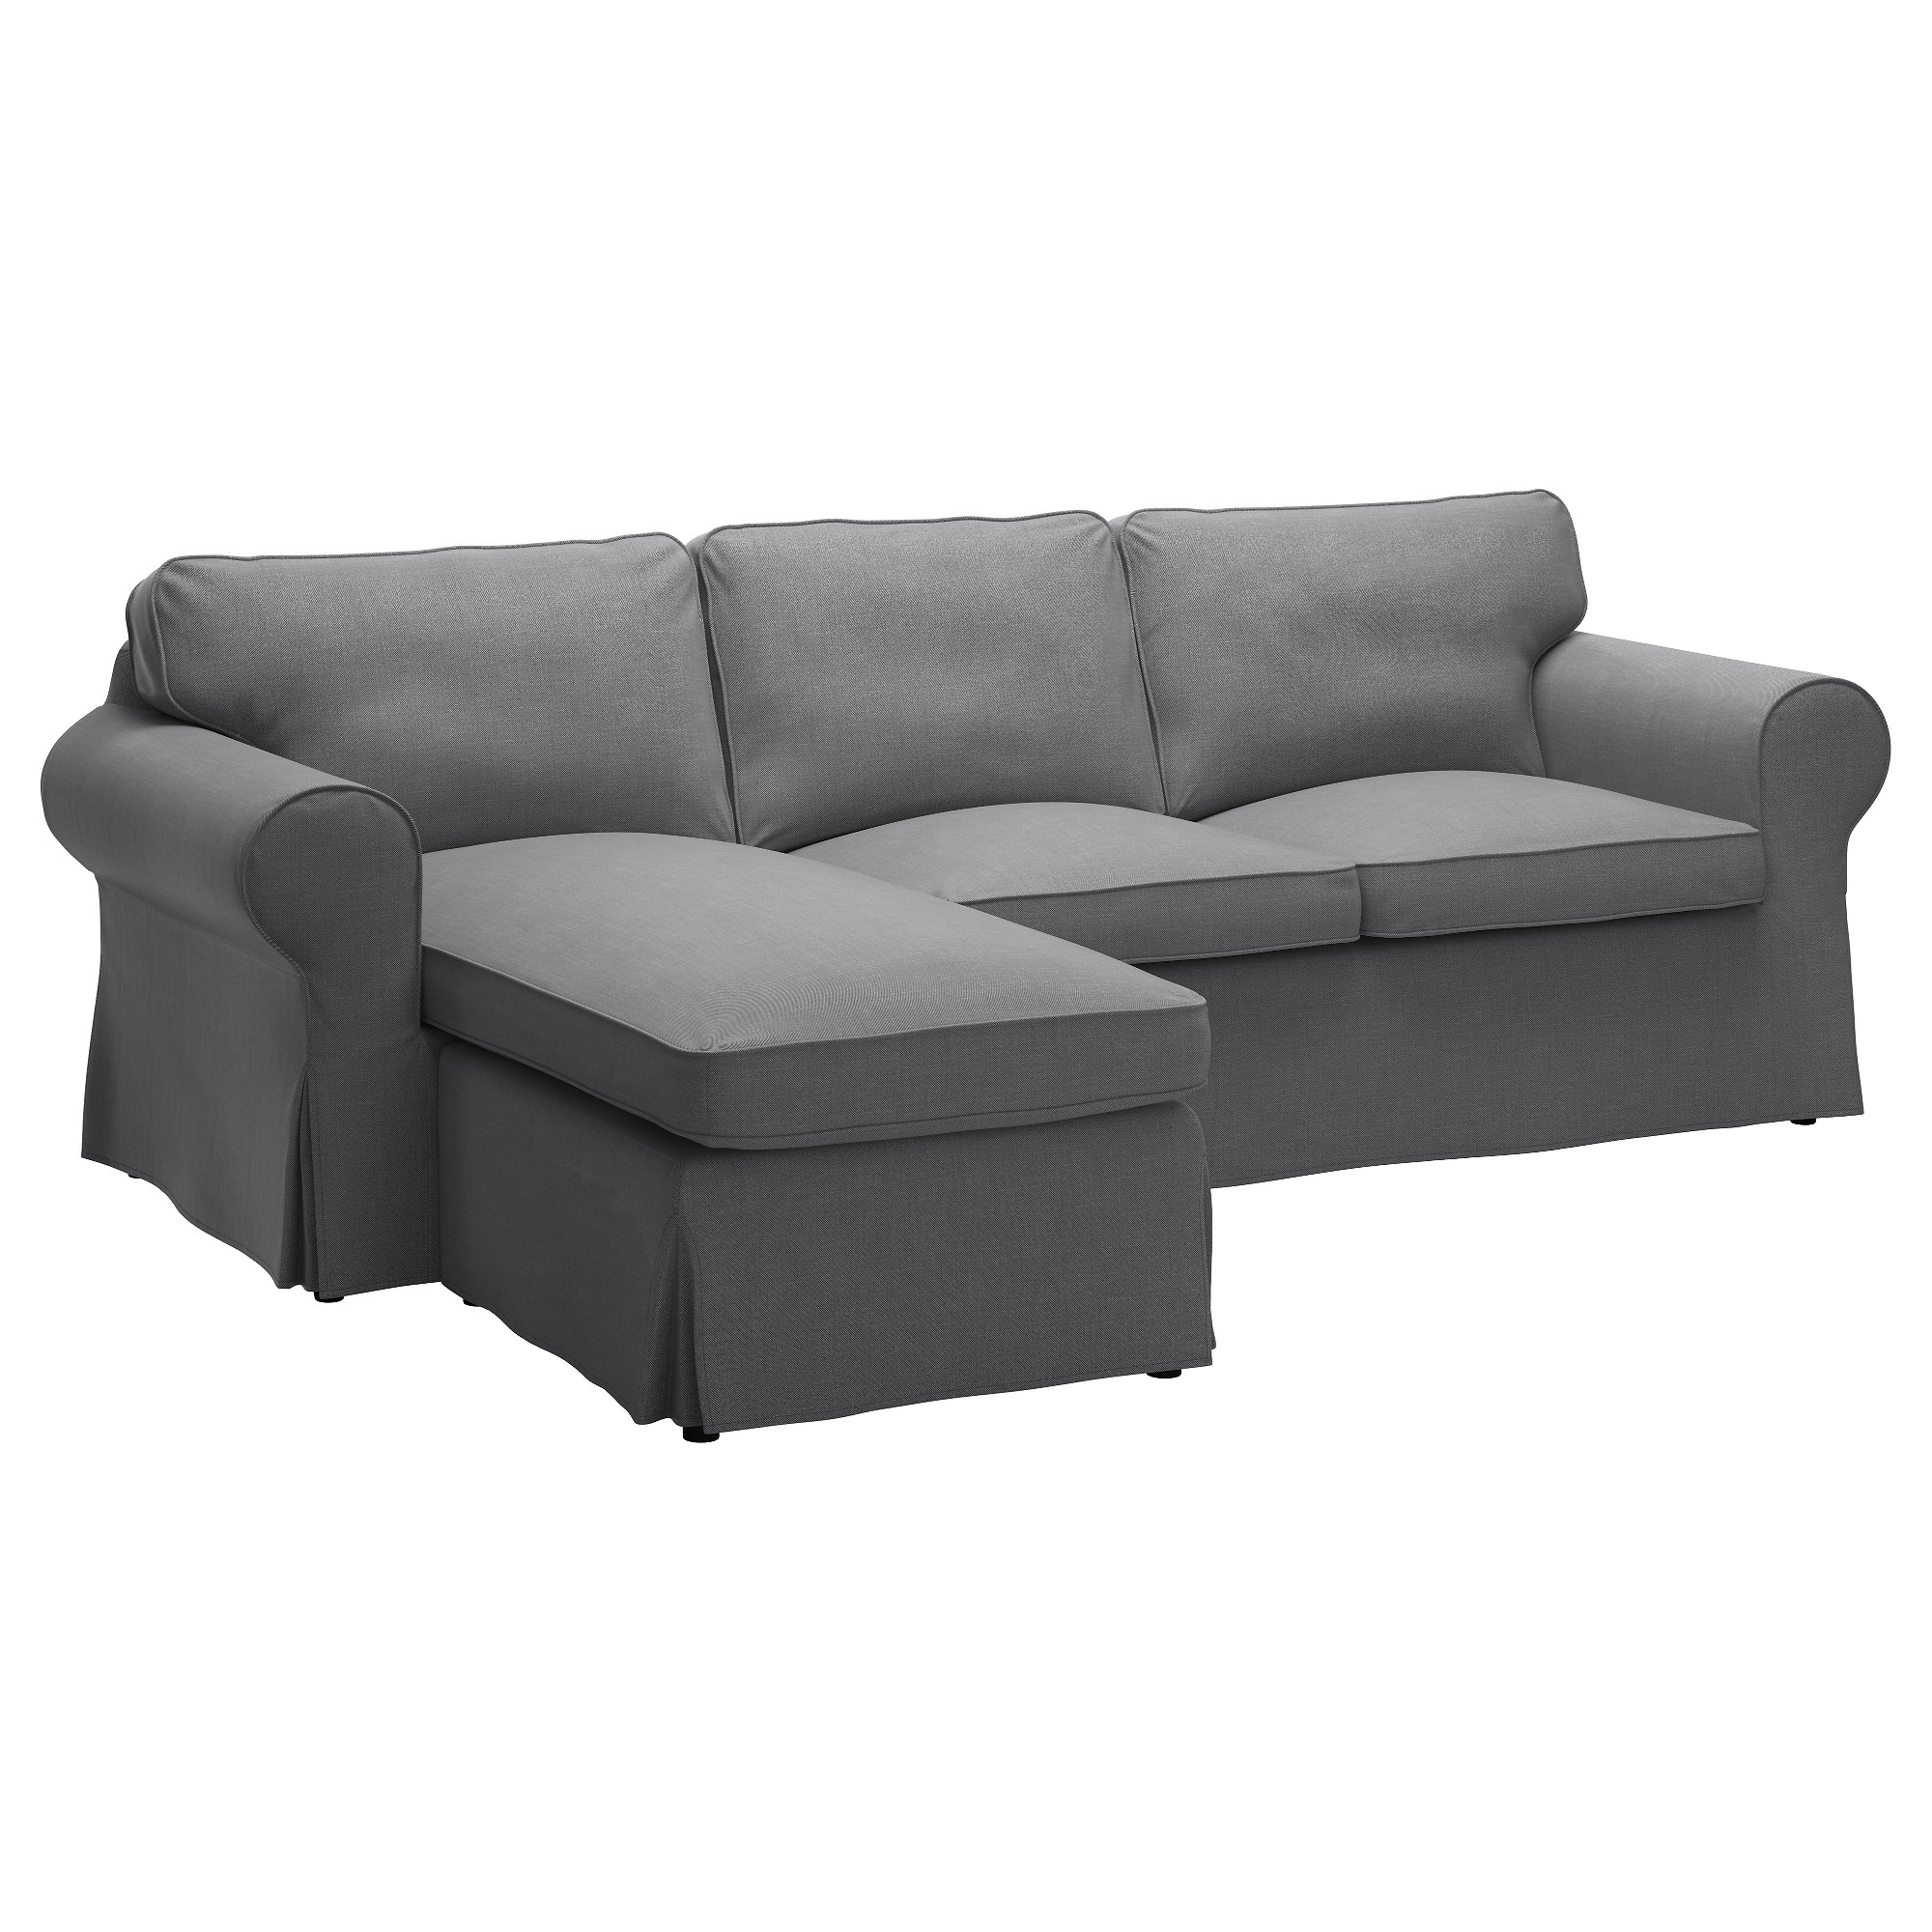 Image Gallery Of Ikea Ektorp Loveseat Chaises View 8 Of 15 Photos